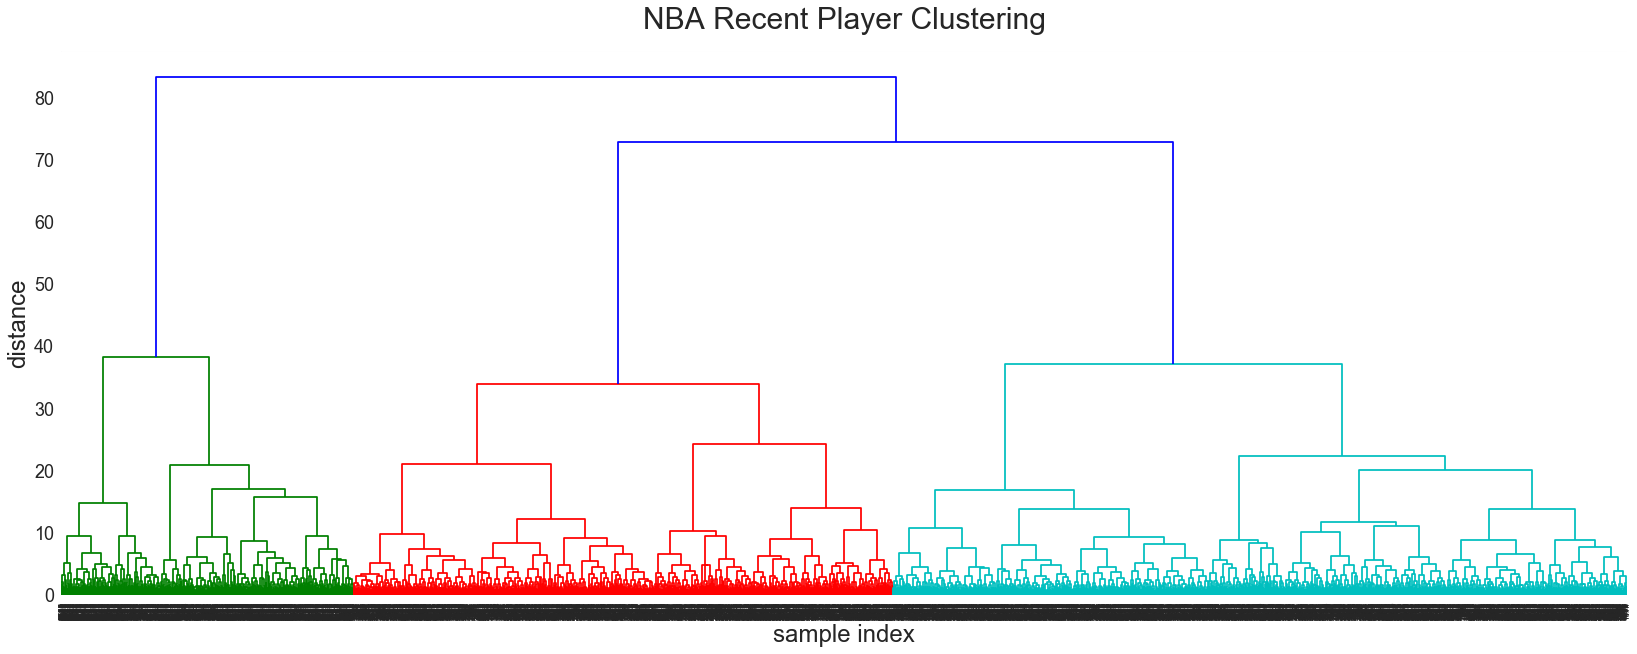 Defining Modern NBA Player Positions - Applying Machine